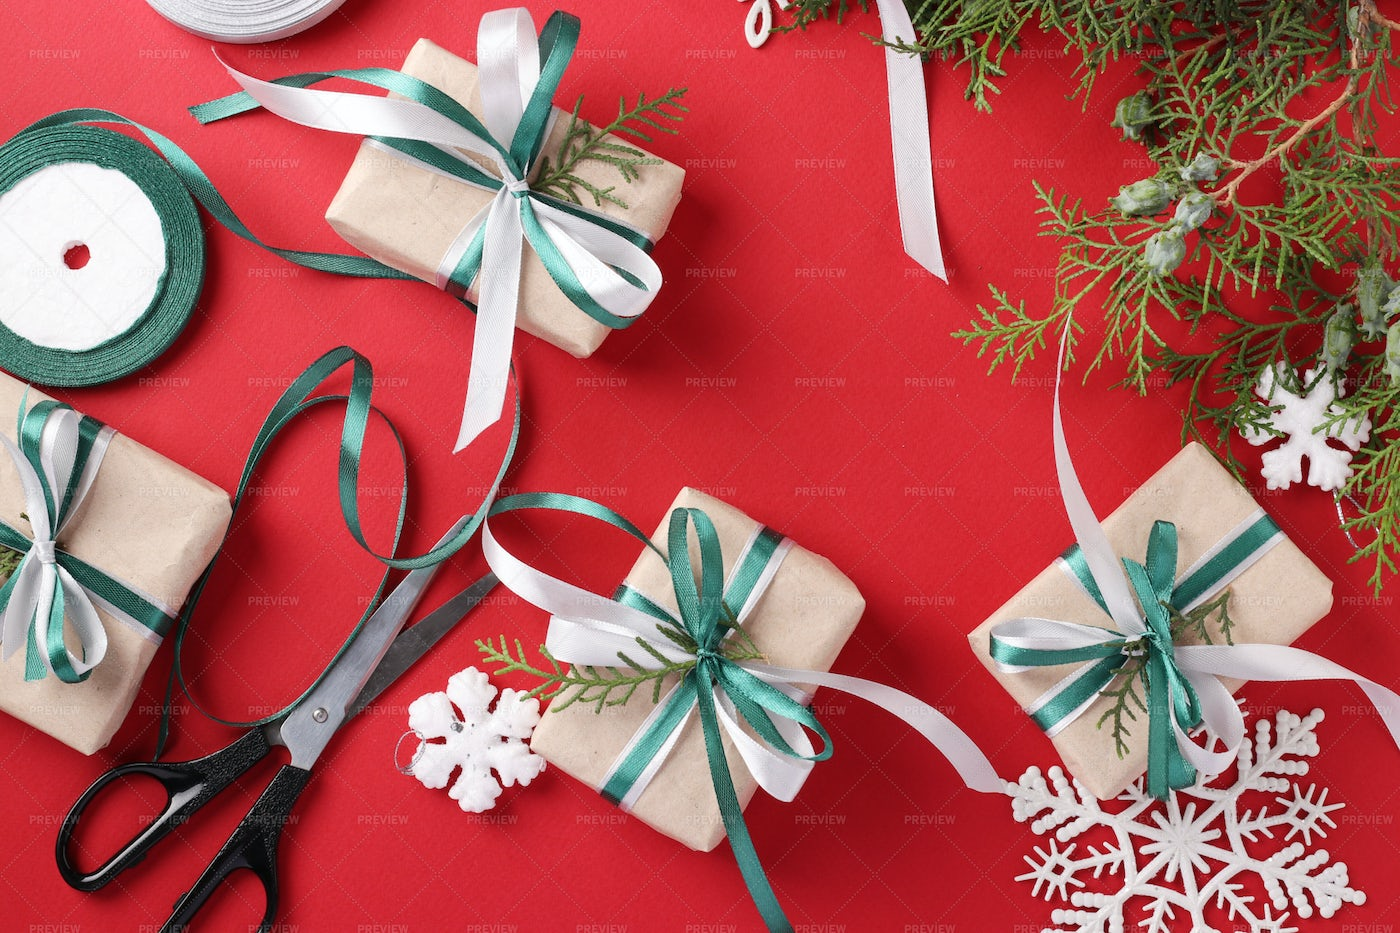 Decorating Gifts With Ribbons: Stock Photos